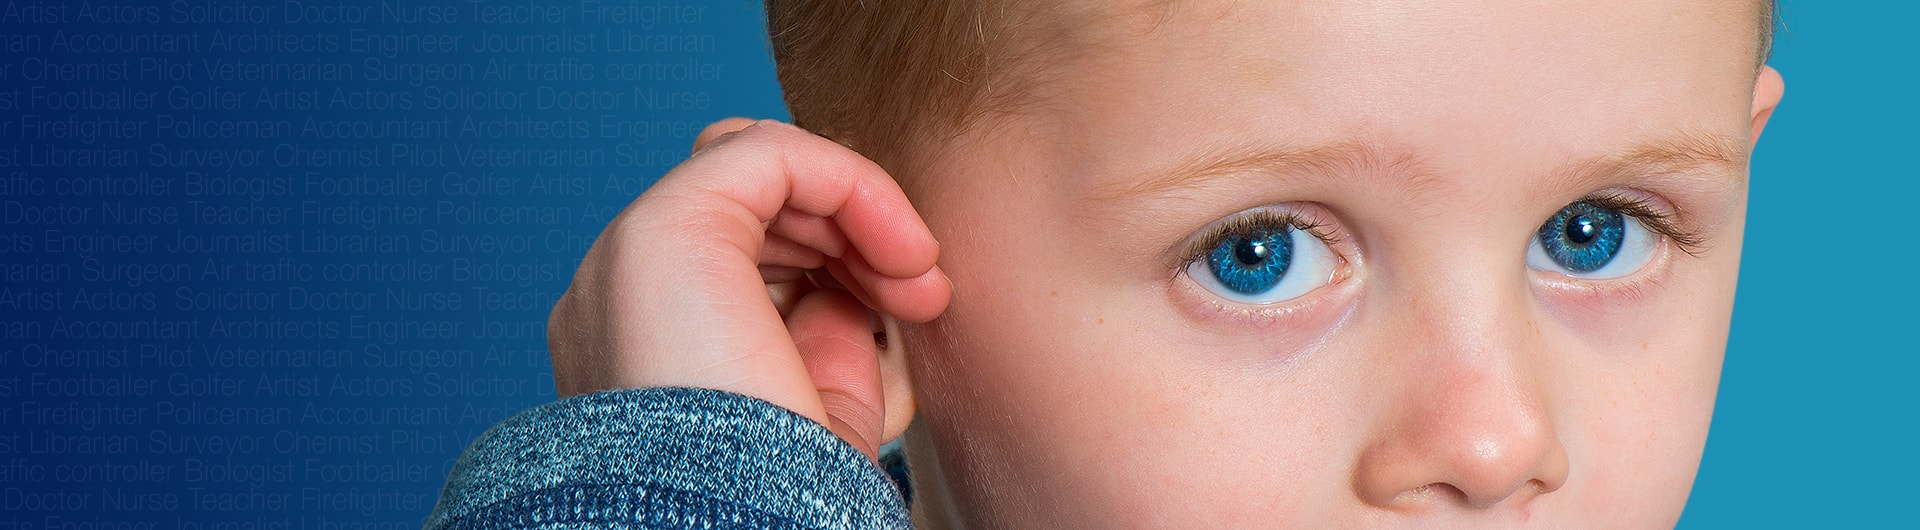 The Invisible Hearing Clinic - Wee Boy